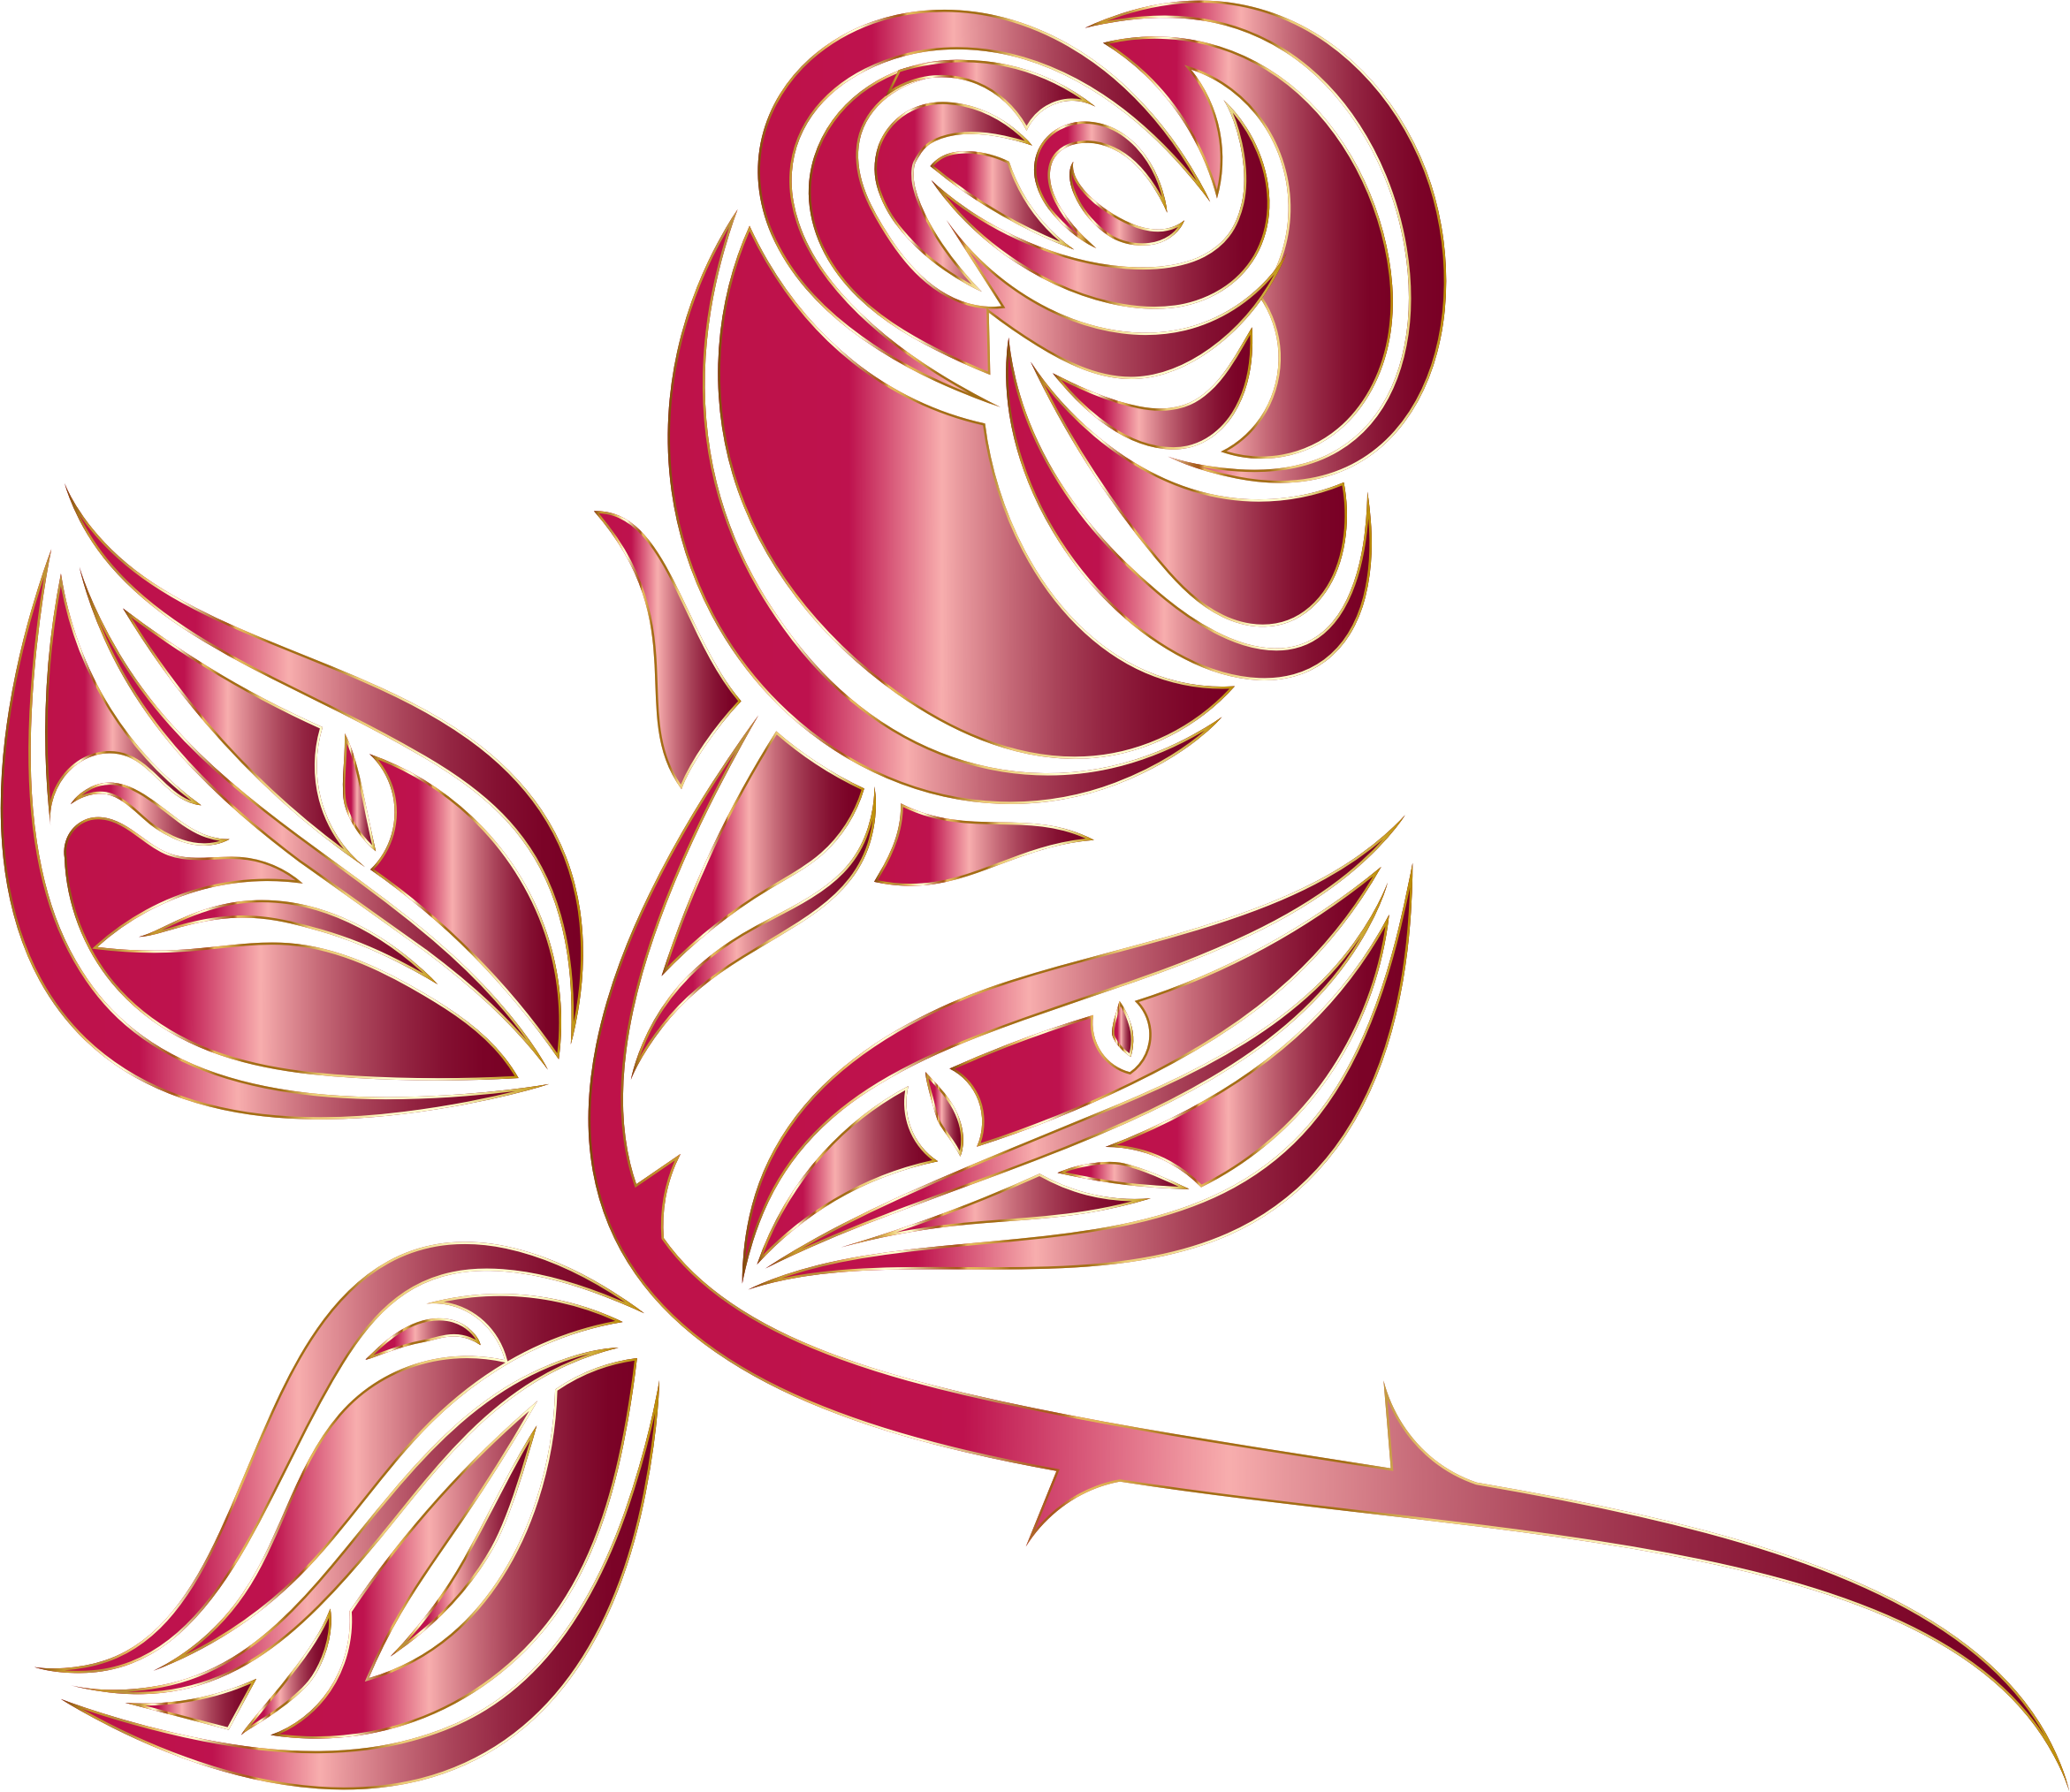 Stylized Rose Extended 4 Minus Background by GDJ